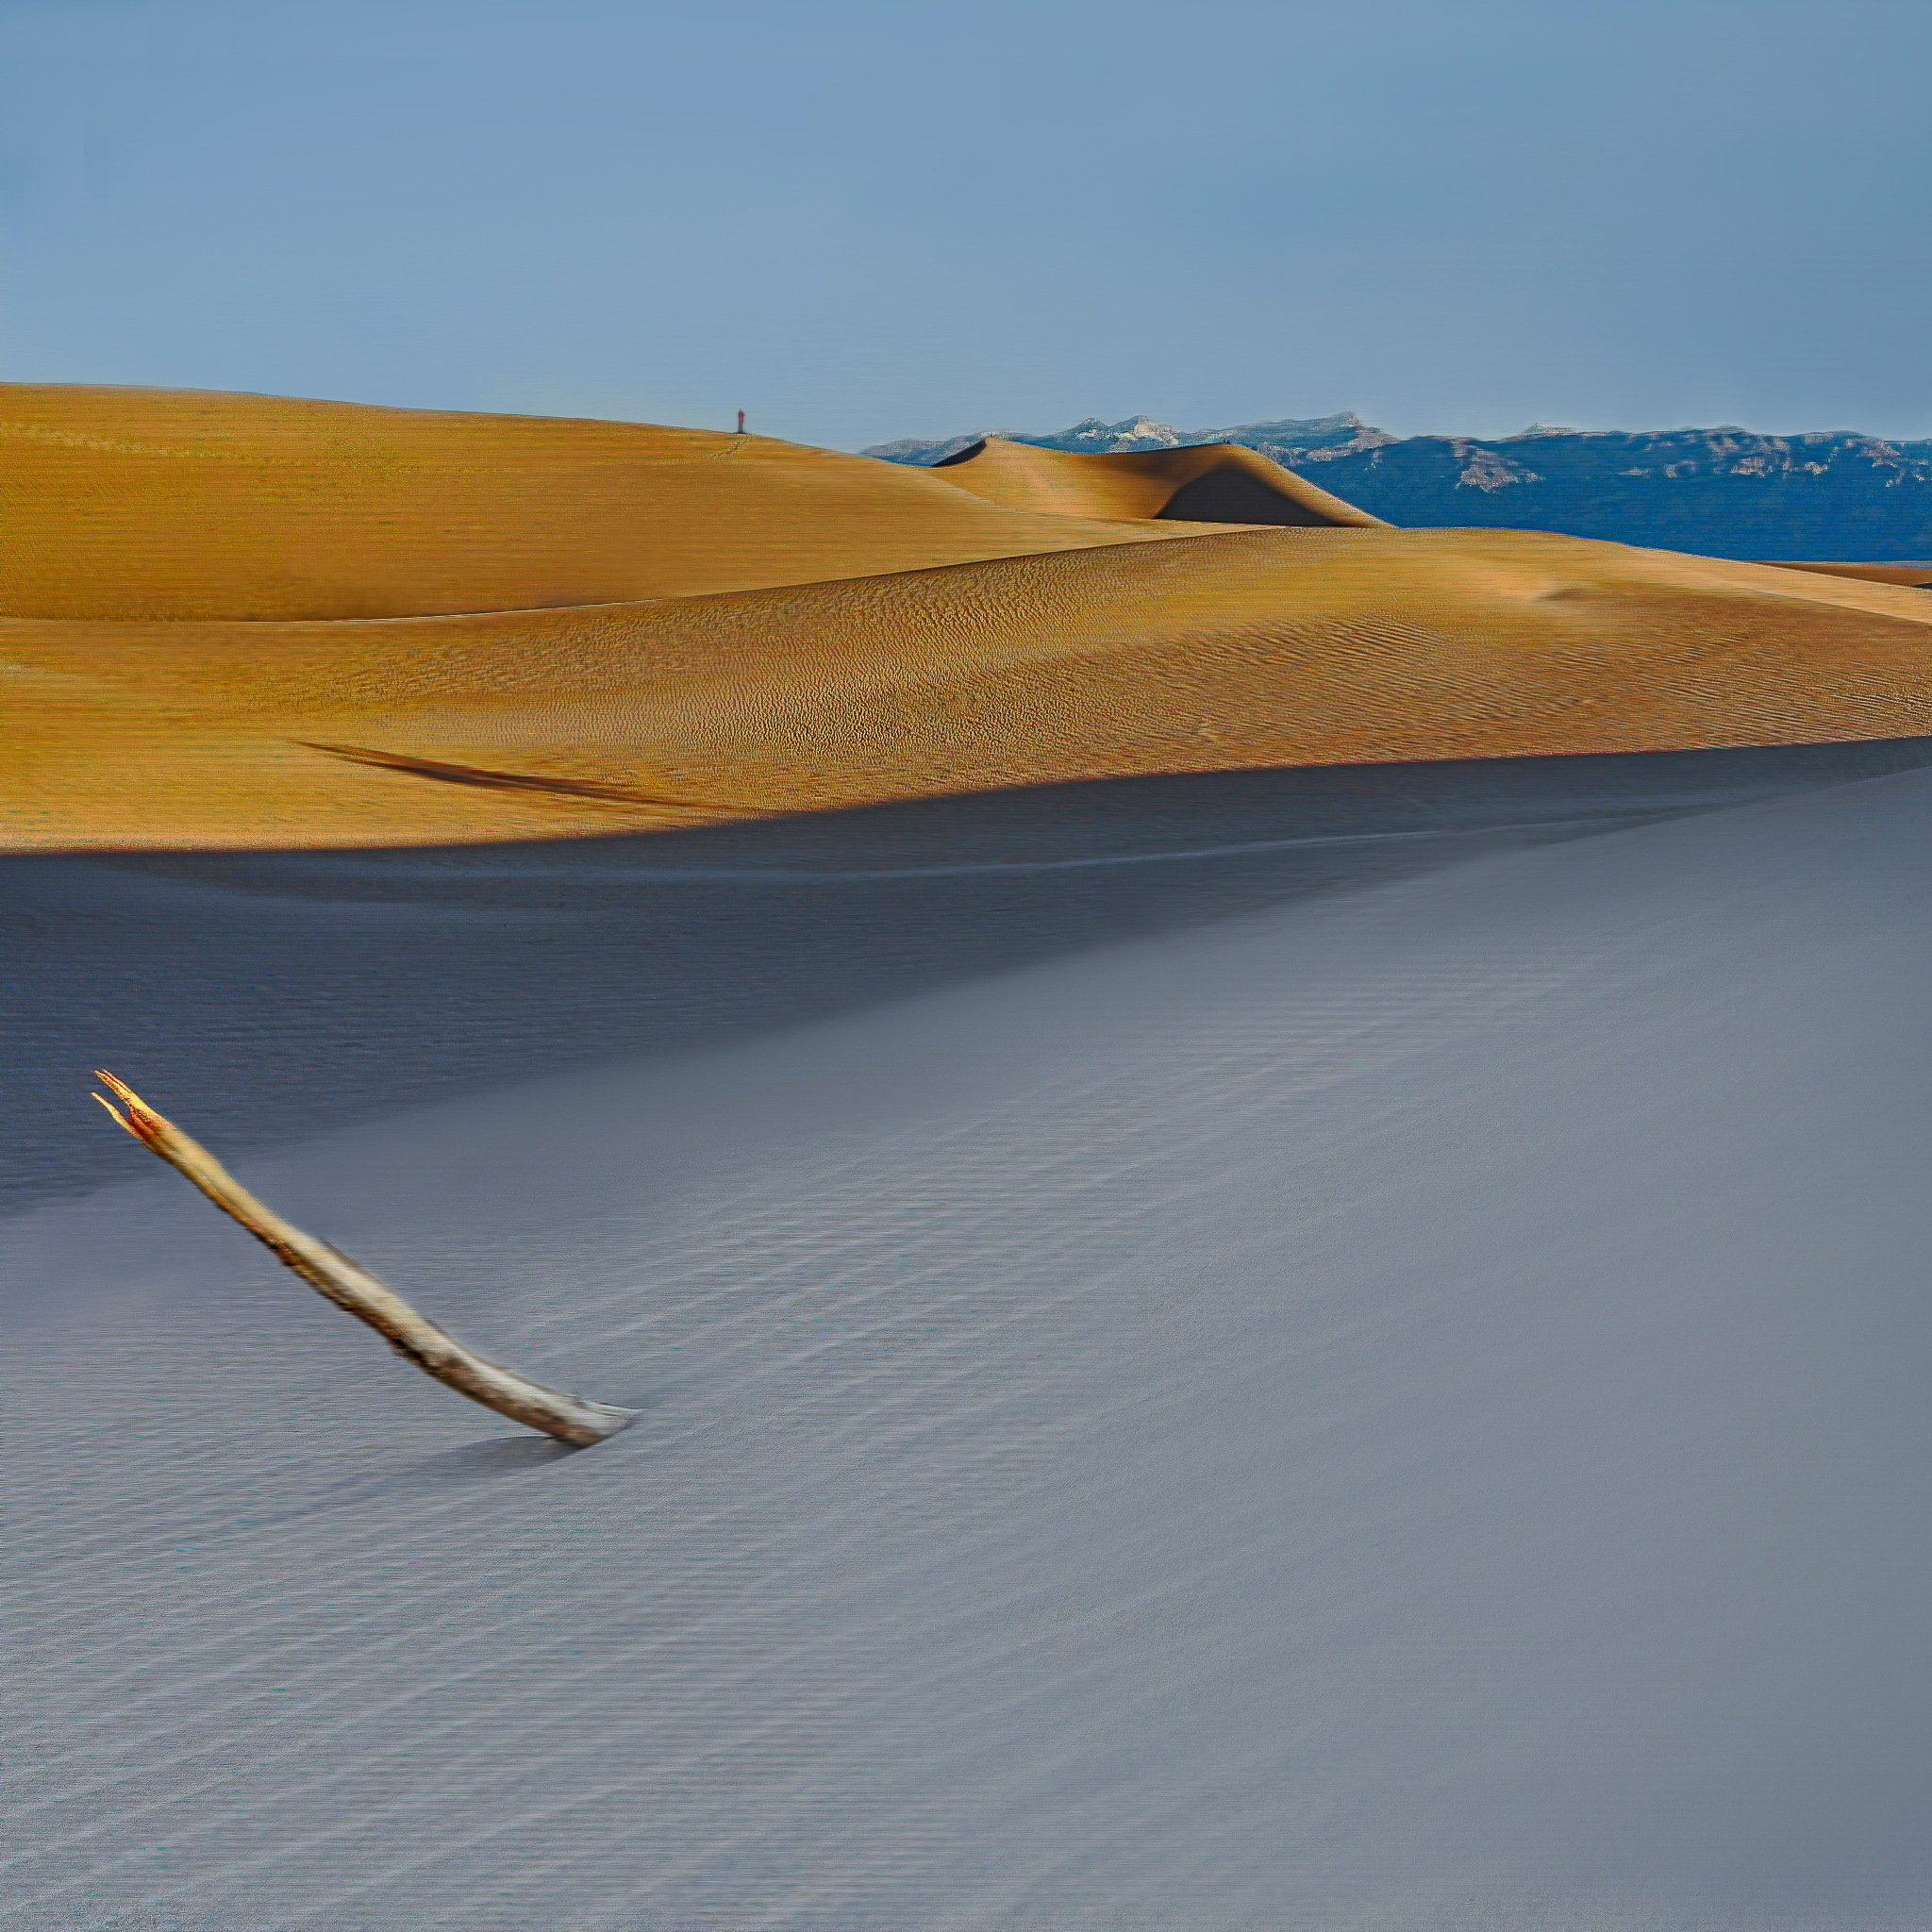 The Mesquite Dunes by Christine C. Abad